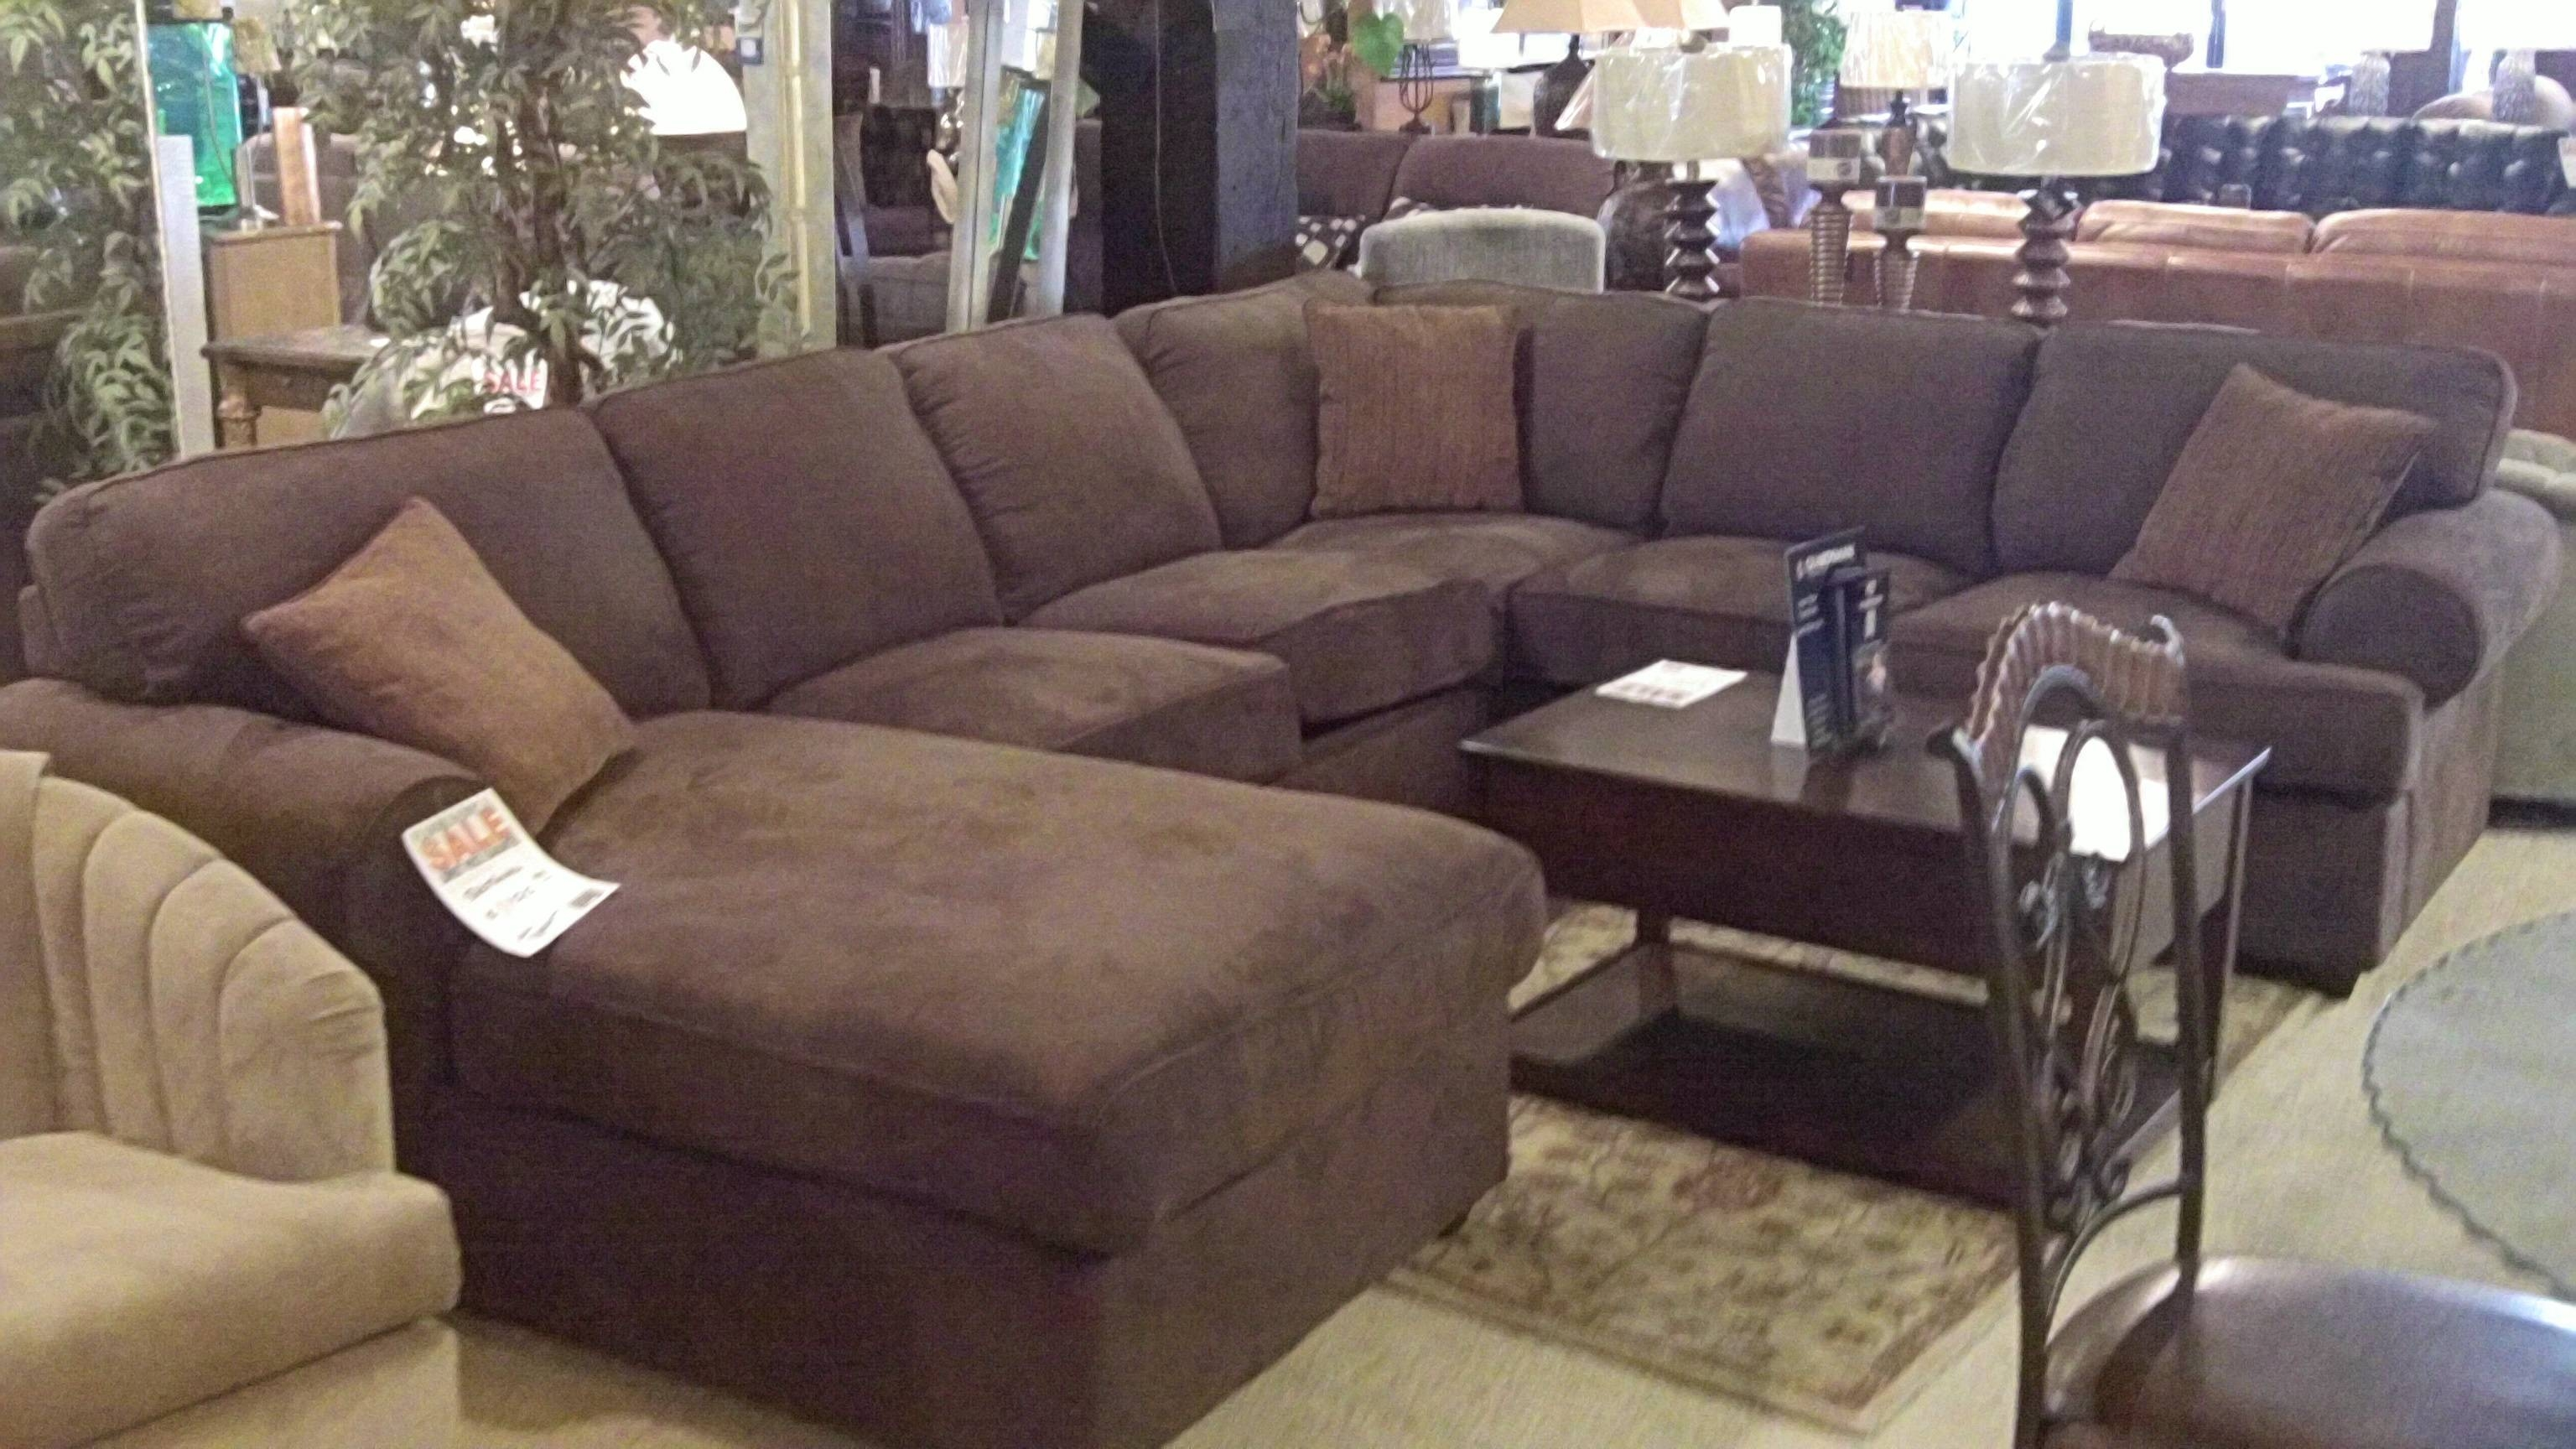 Furniture: Nice Extra Large Sectional Sofa For Large Living Room inside Sectional Sofa With Oversized Ottoman (Image 14 of 30)